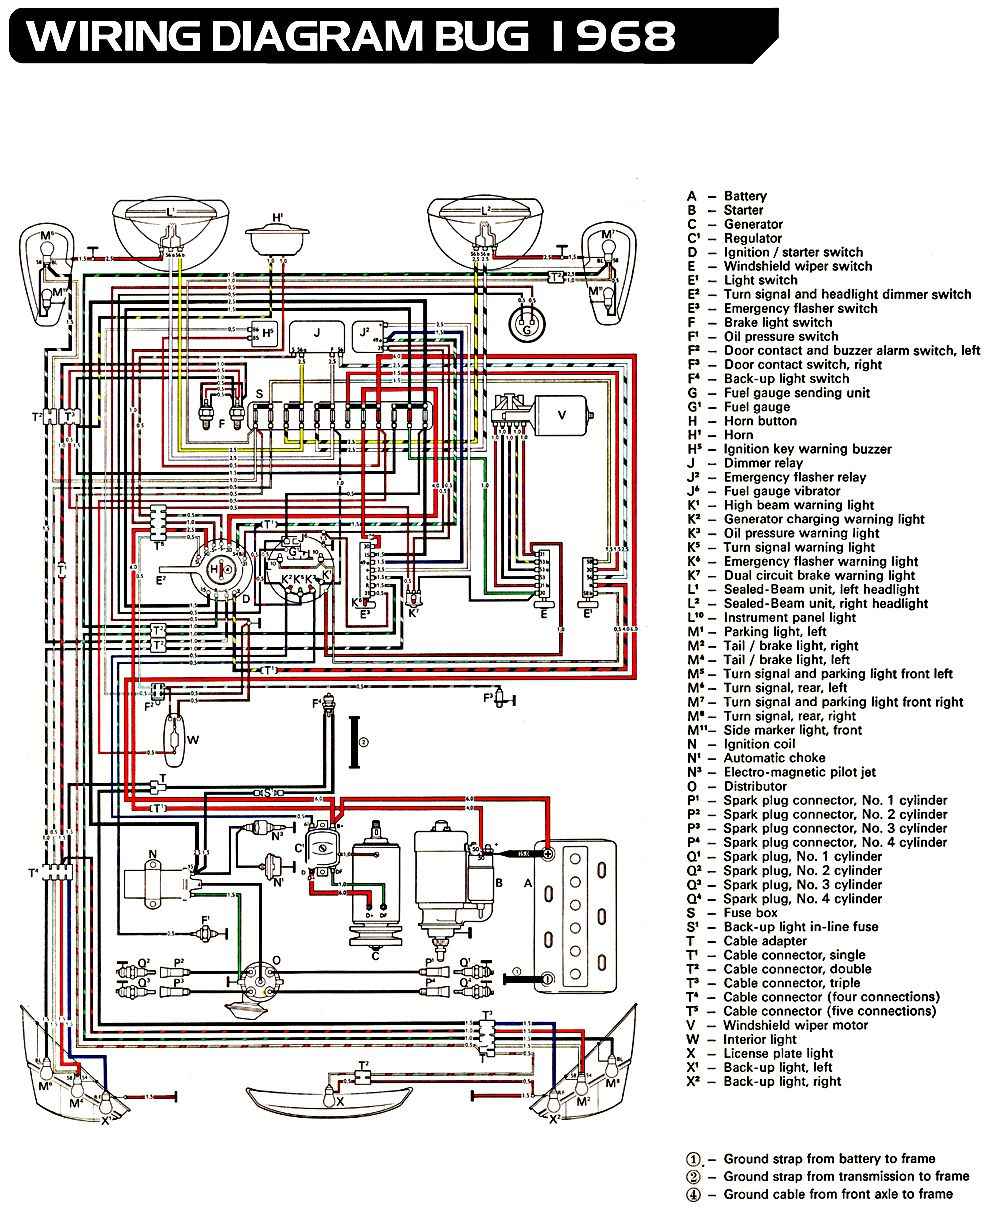 hight resolution of vw bug ignition wiring diagram 73 vw wiring diagram free vw vw bug wiring diagram 2004 vw bug wiring diagram